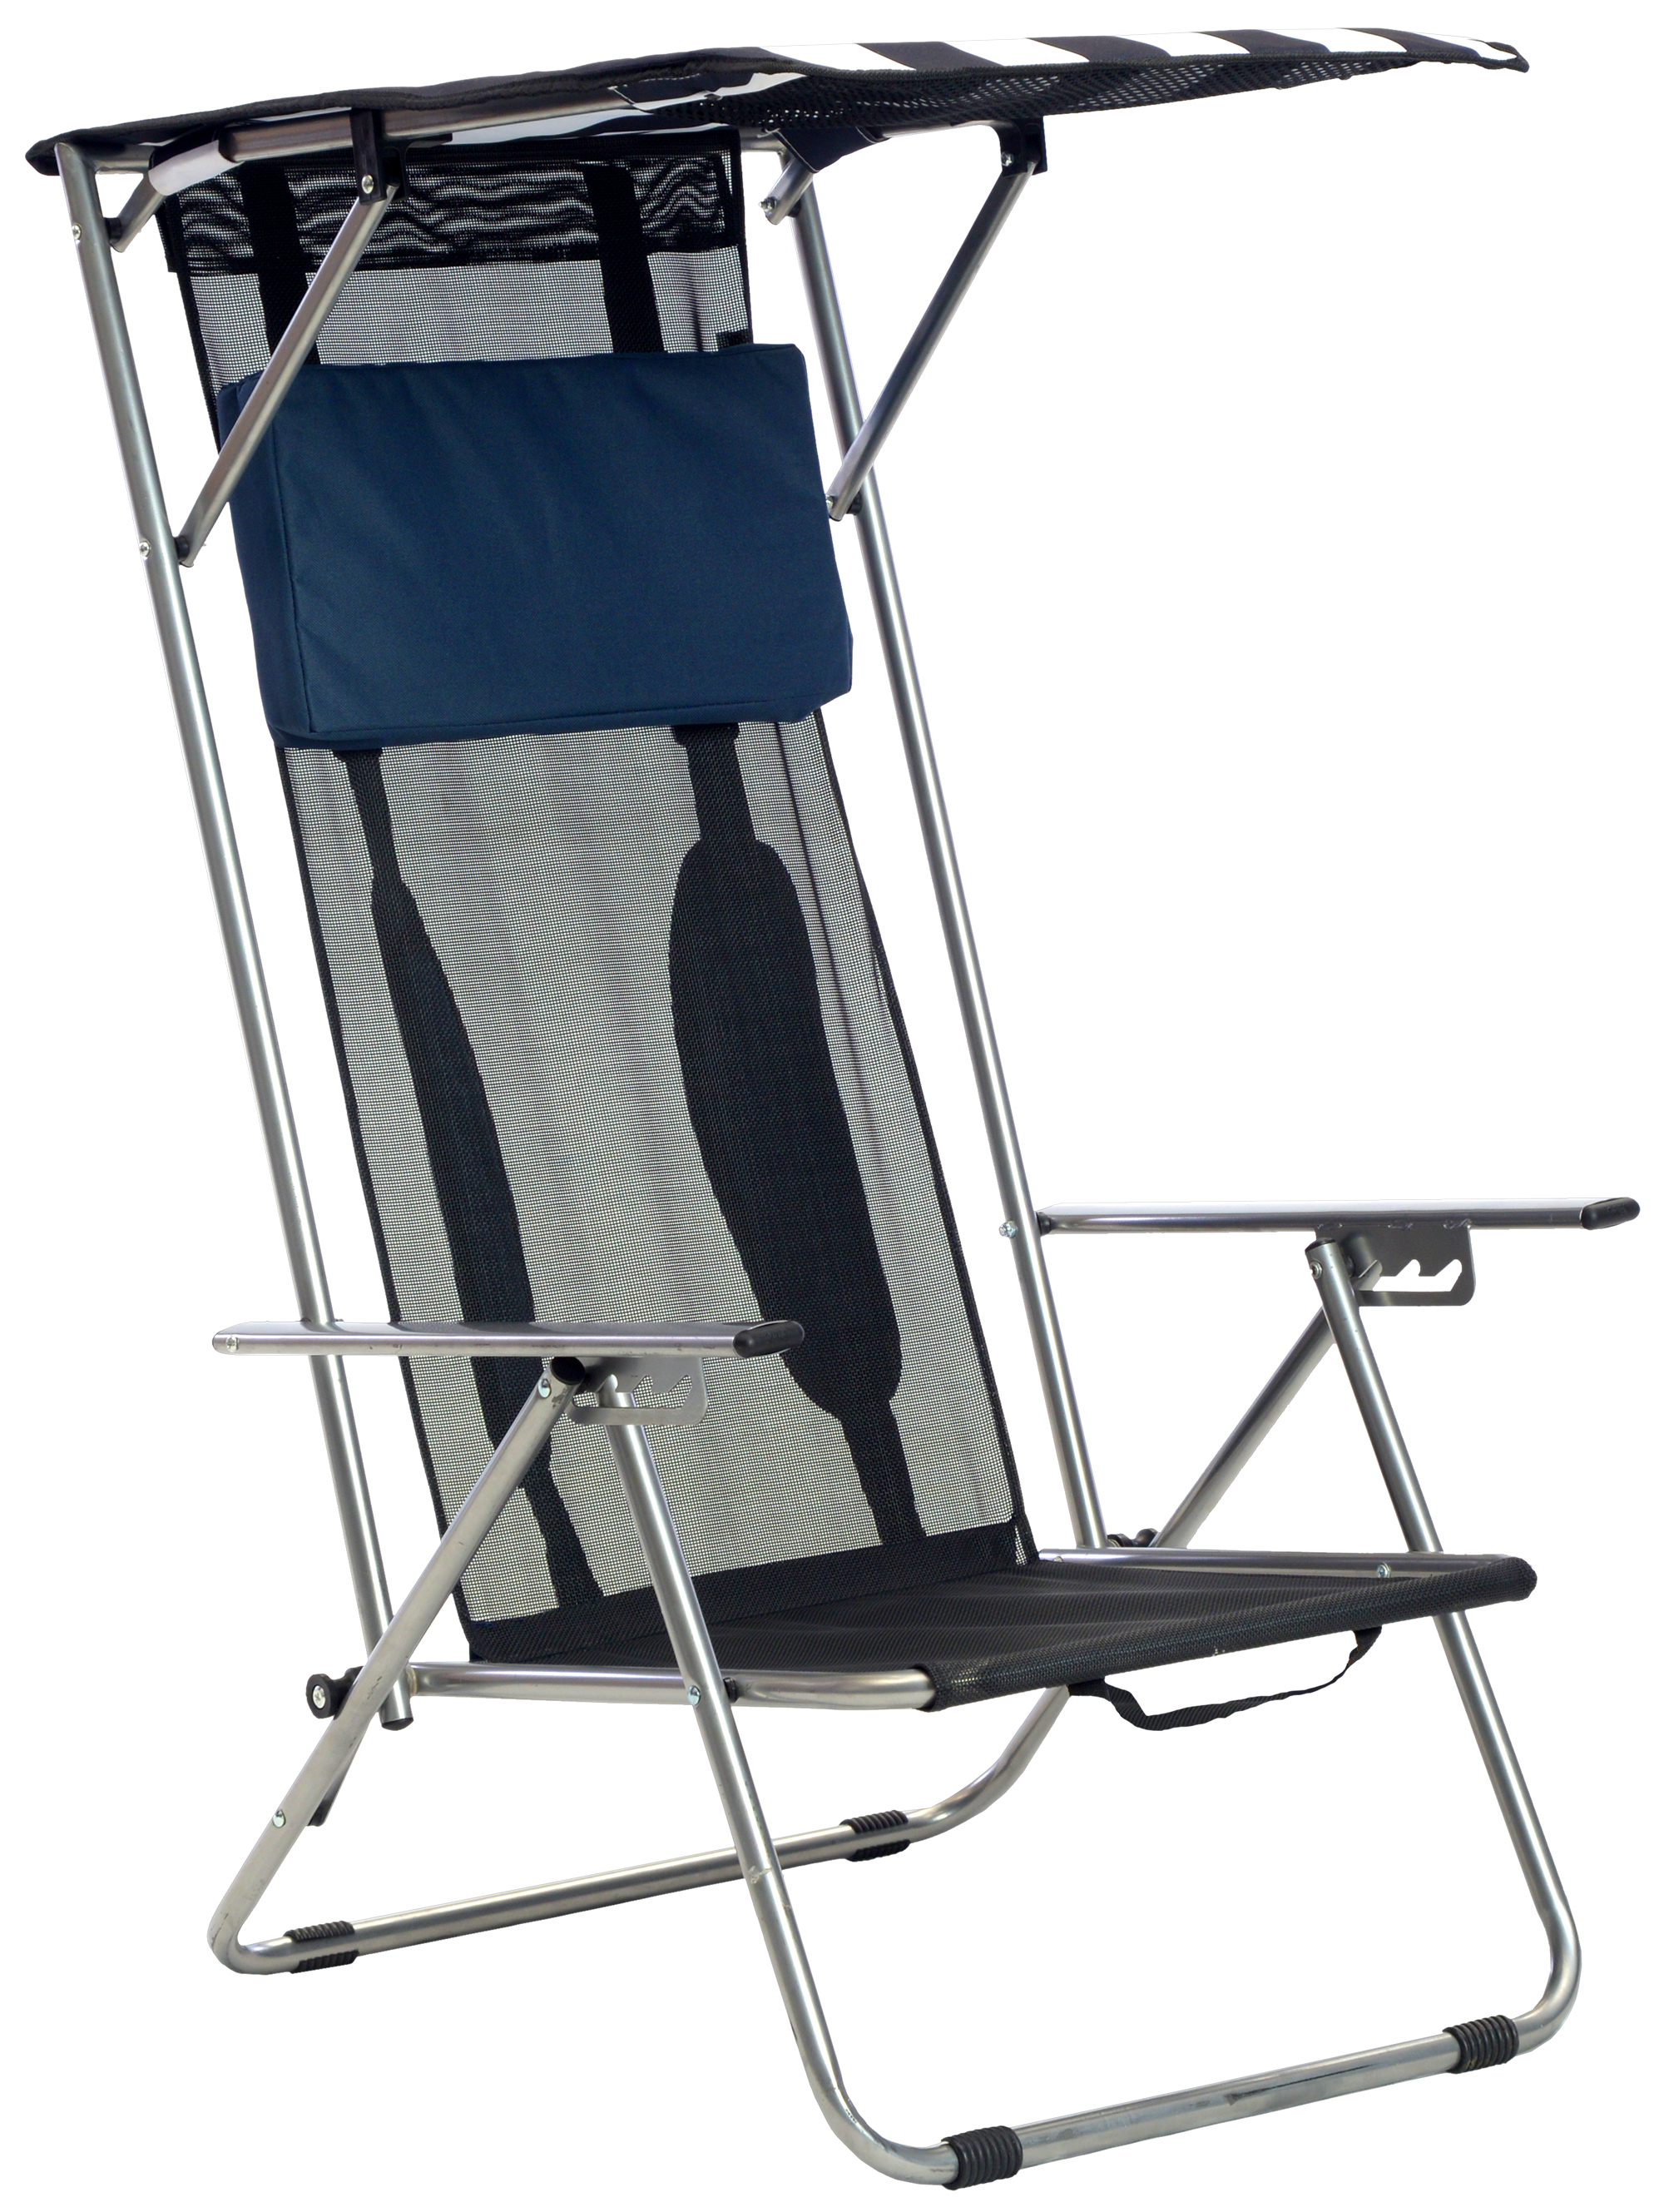 Beach Recliner Shade Chair, Navy and White Fabric, Silver Frame